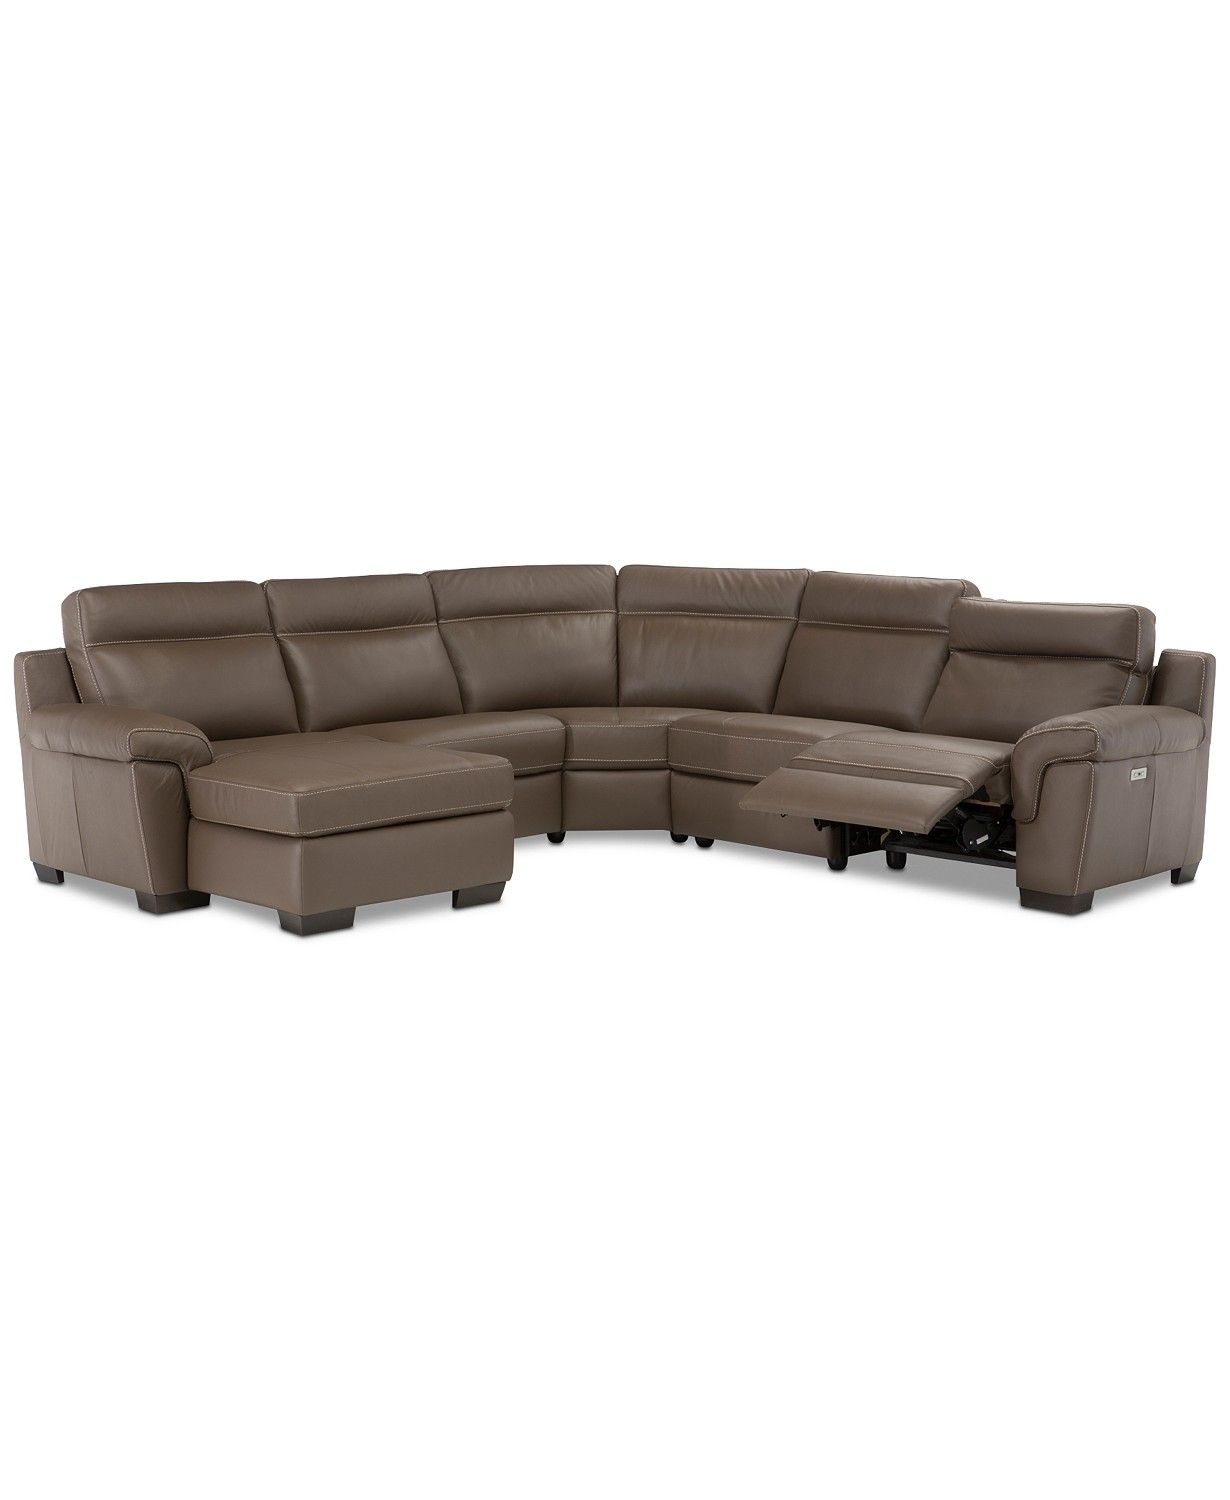 Julius Ii 5-Pc. Leather Chaise Sectional Sofa With 1 Power Recliner intended for Clyde Saddle 3 Piece Power Reclining Sectionals With Power Headrest & Usb (Image 19 of 30)